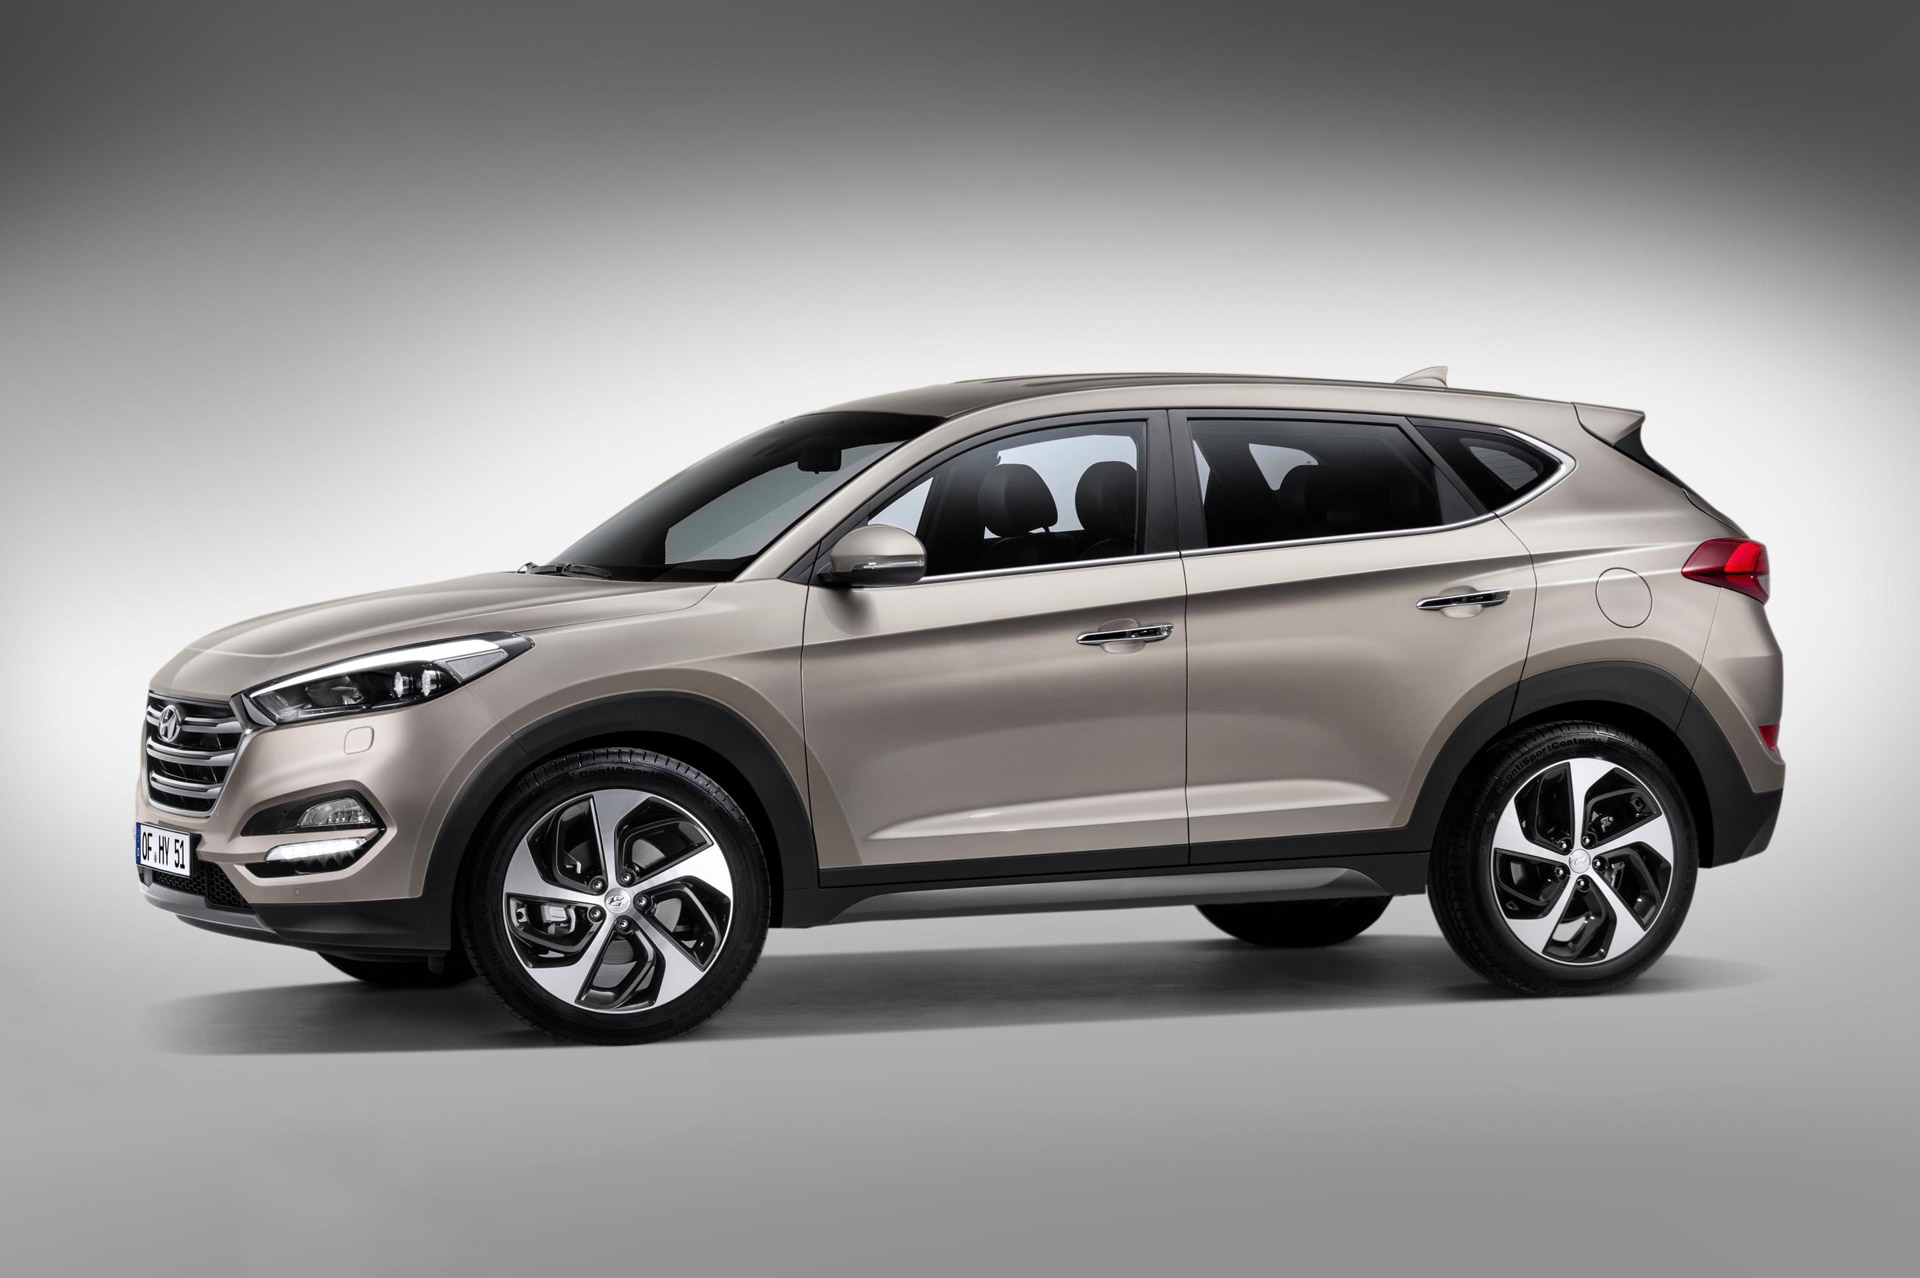 Tesla Suv Specs >> 2016 Hyundai Tucson Review, Ratings, Specs, Prices, and Photos - The Car Connection